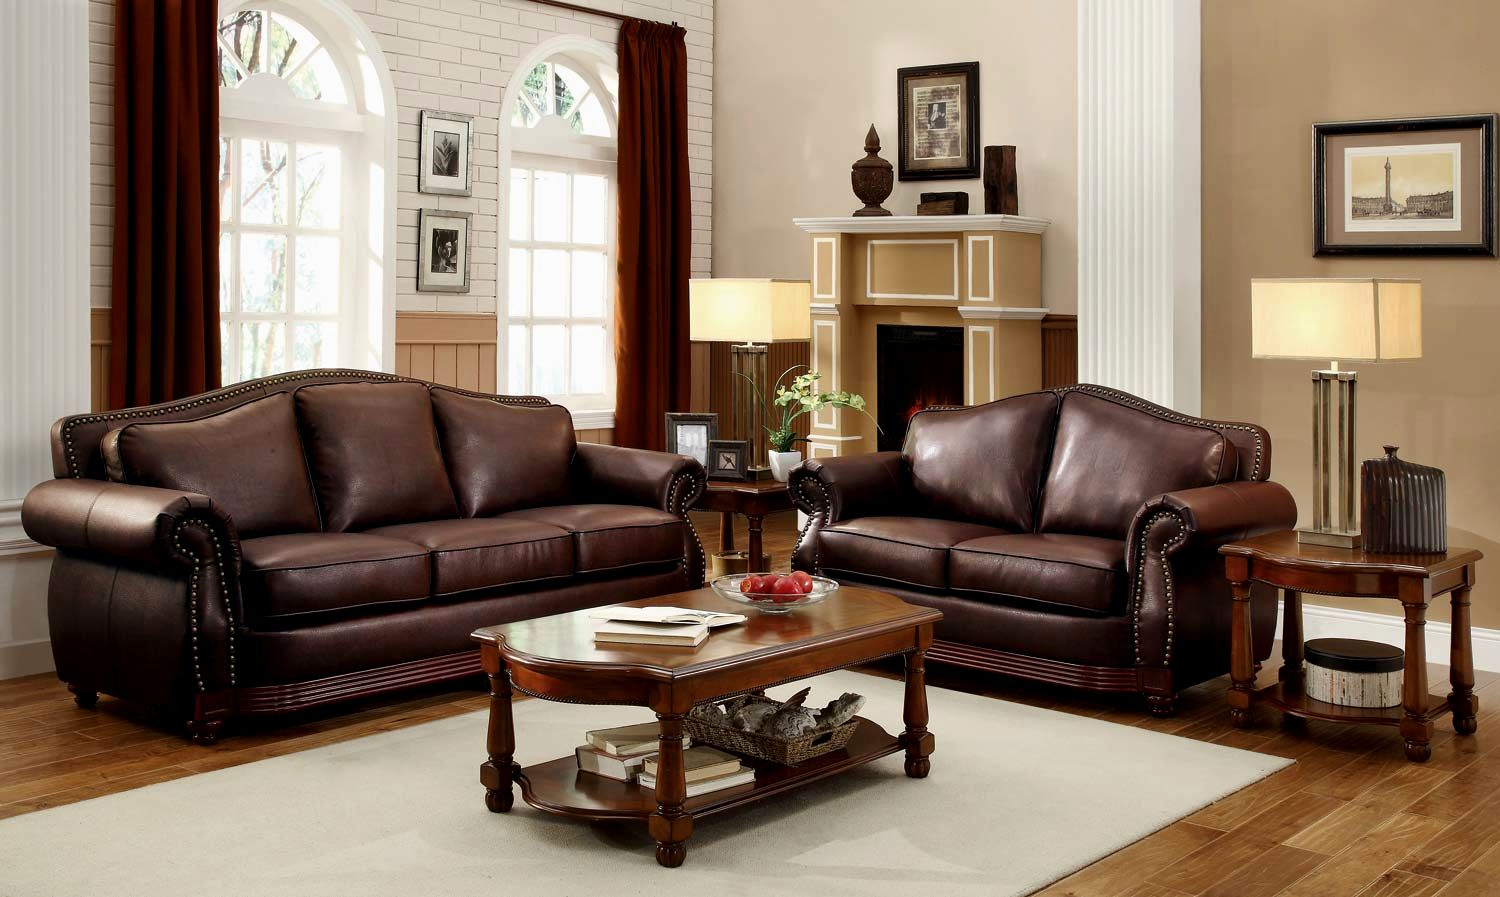 new small sectional sleeper sofa ideas-Stunning Small Sectional Sleeper sofa Décor